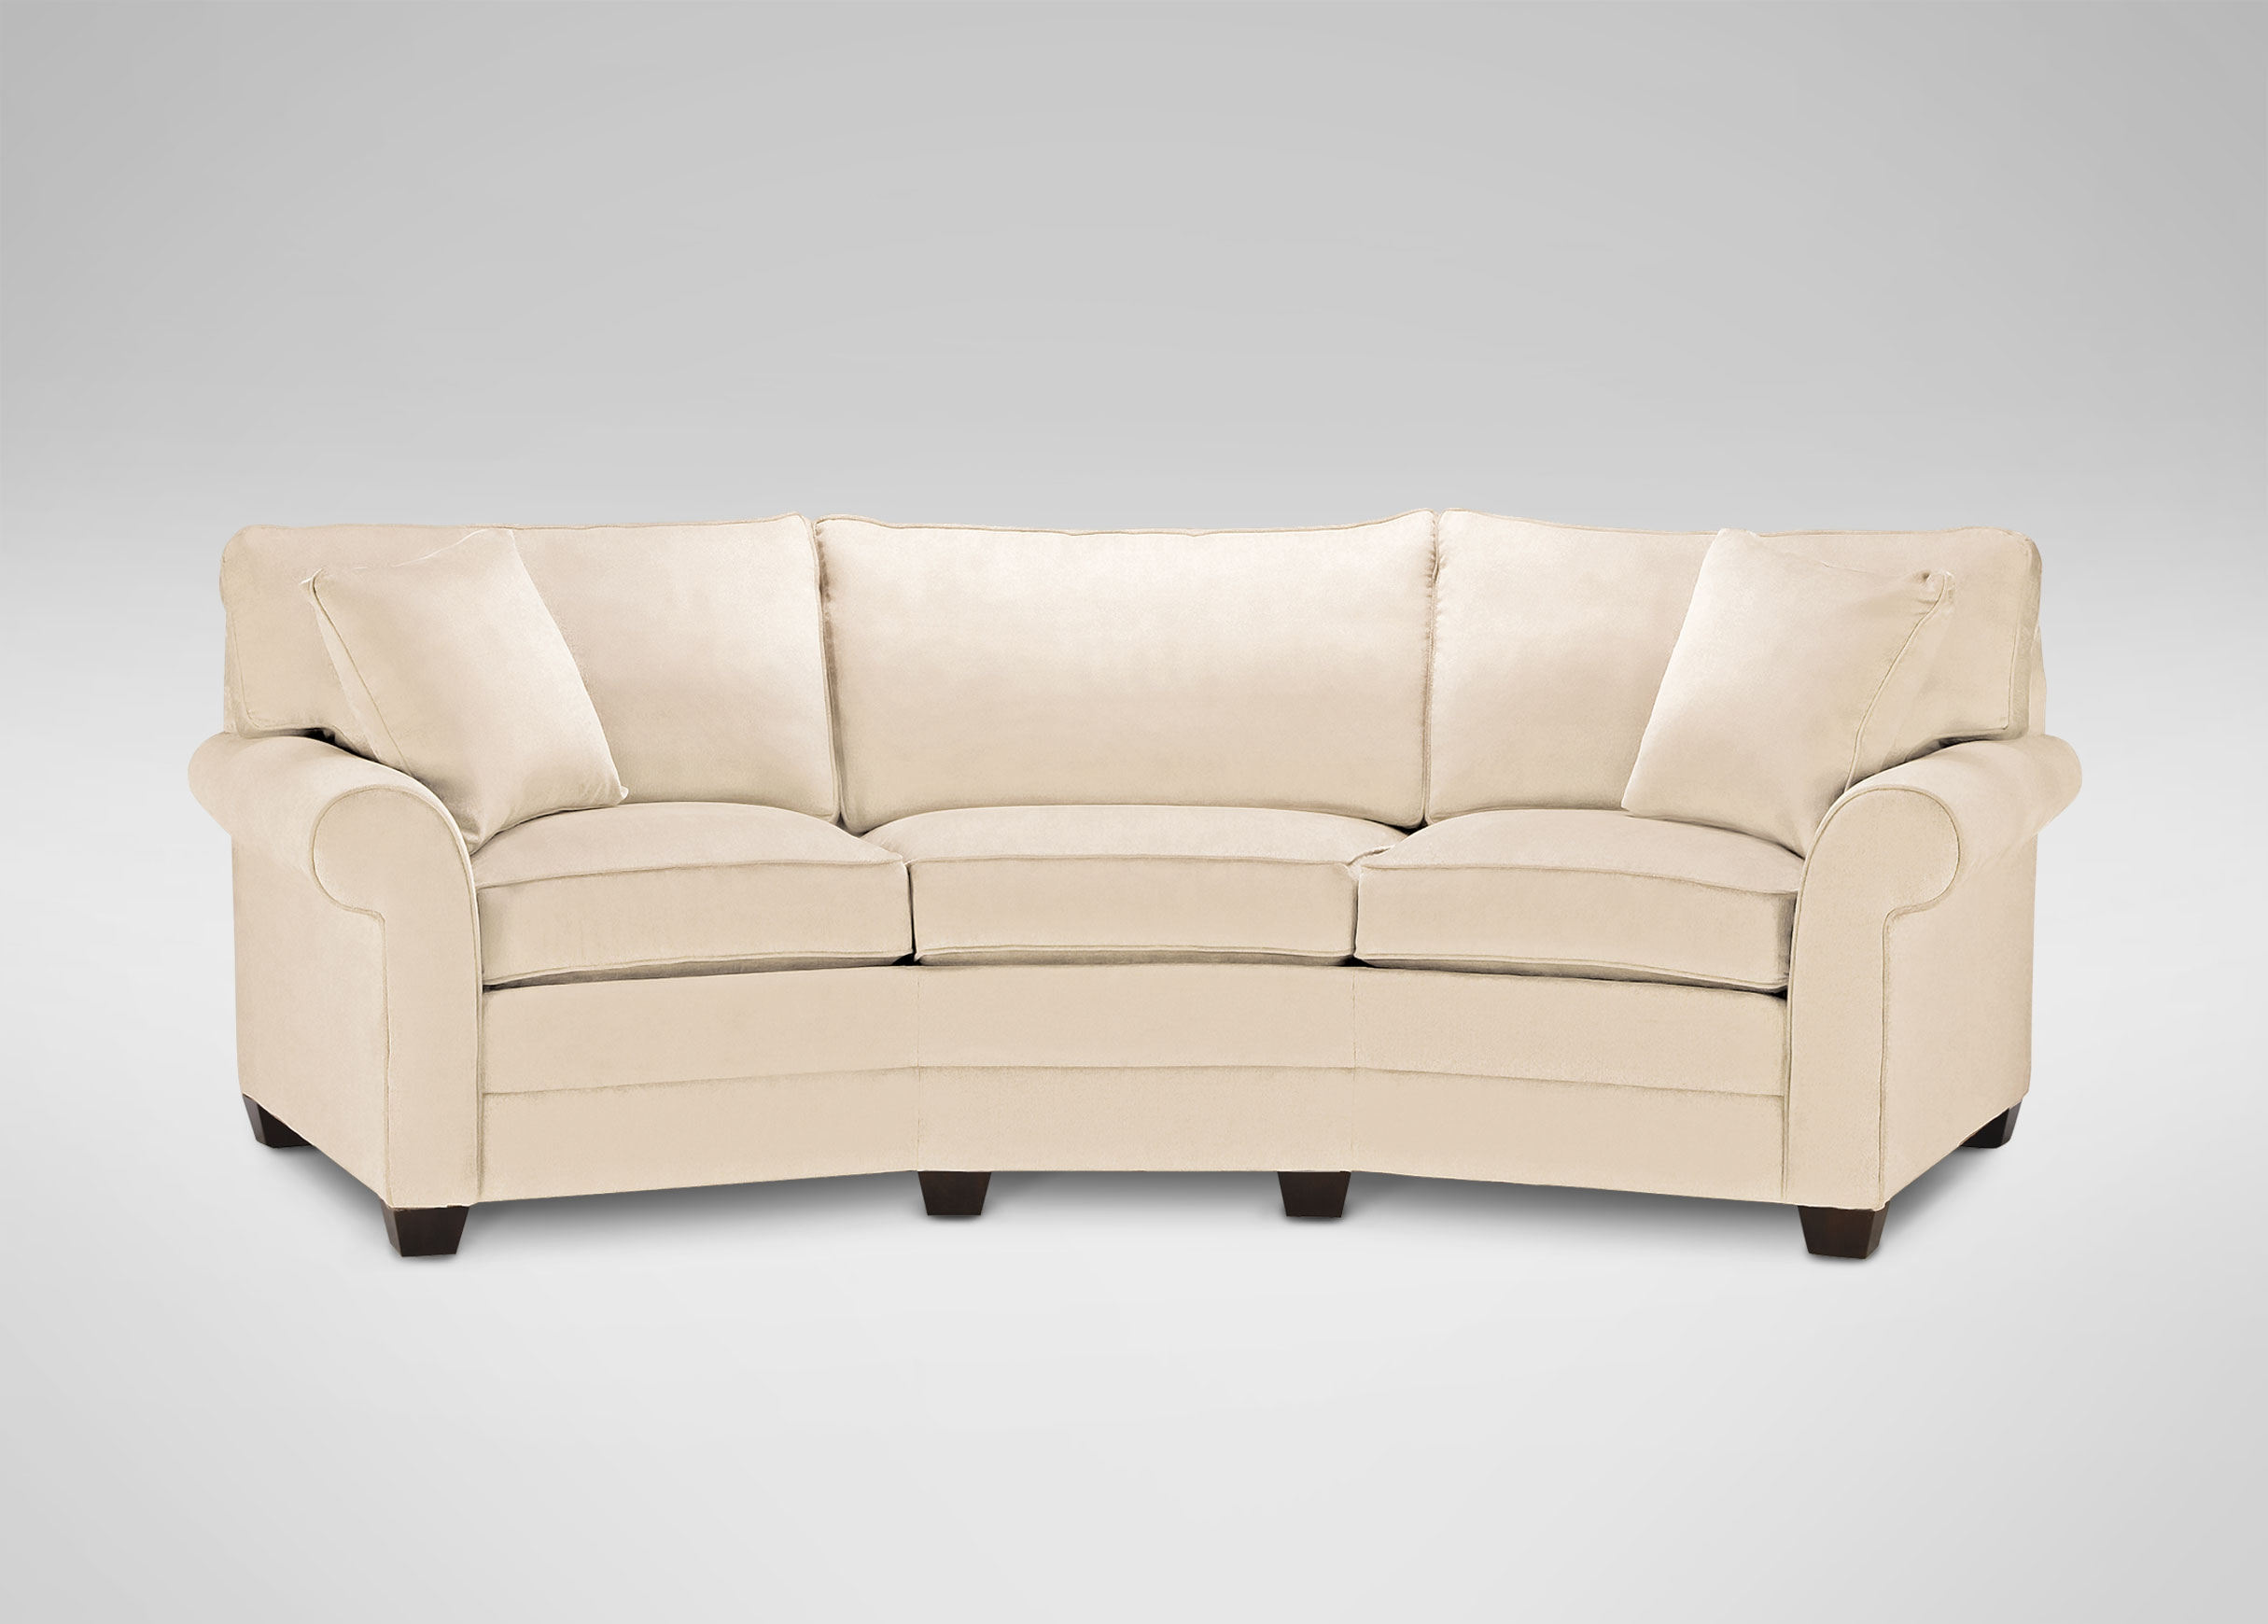 Bennett Conversation Sofa Sofas Loveseats Throughout Conversation Sofa Sectional (View 10 of 15)